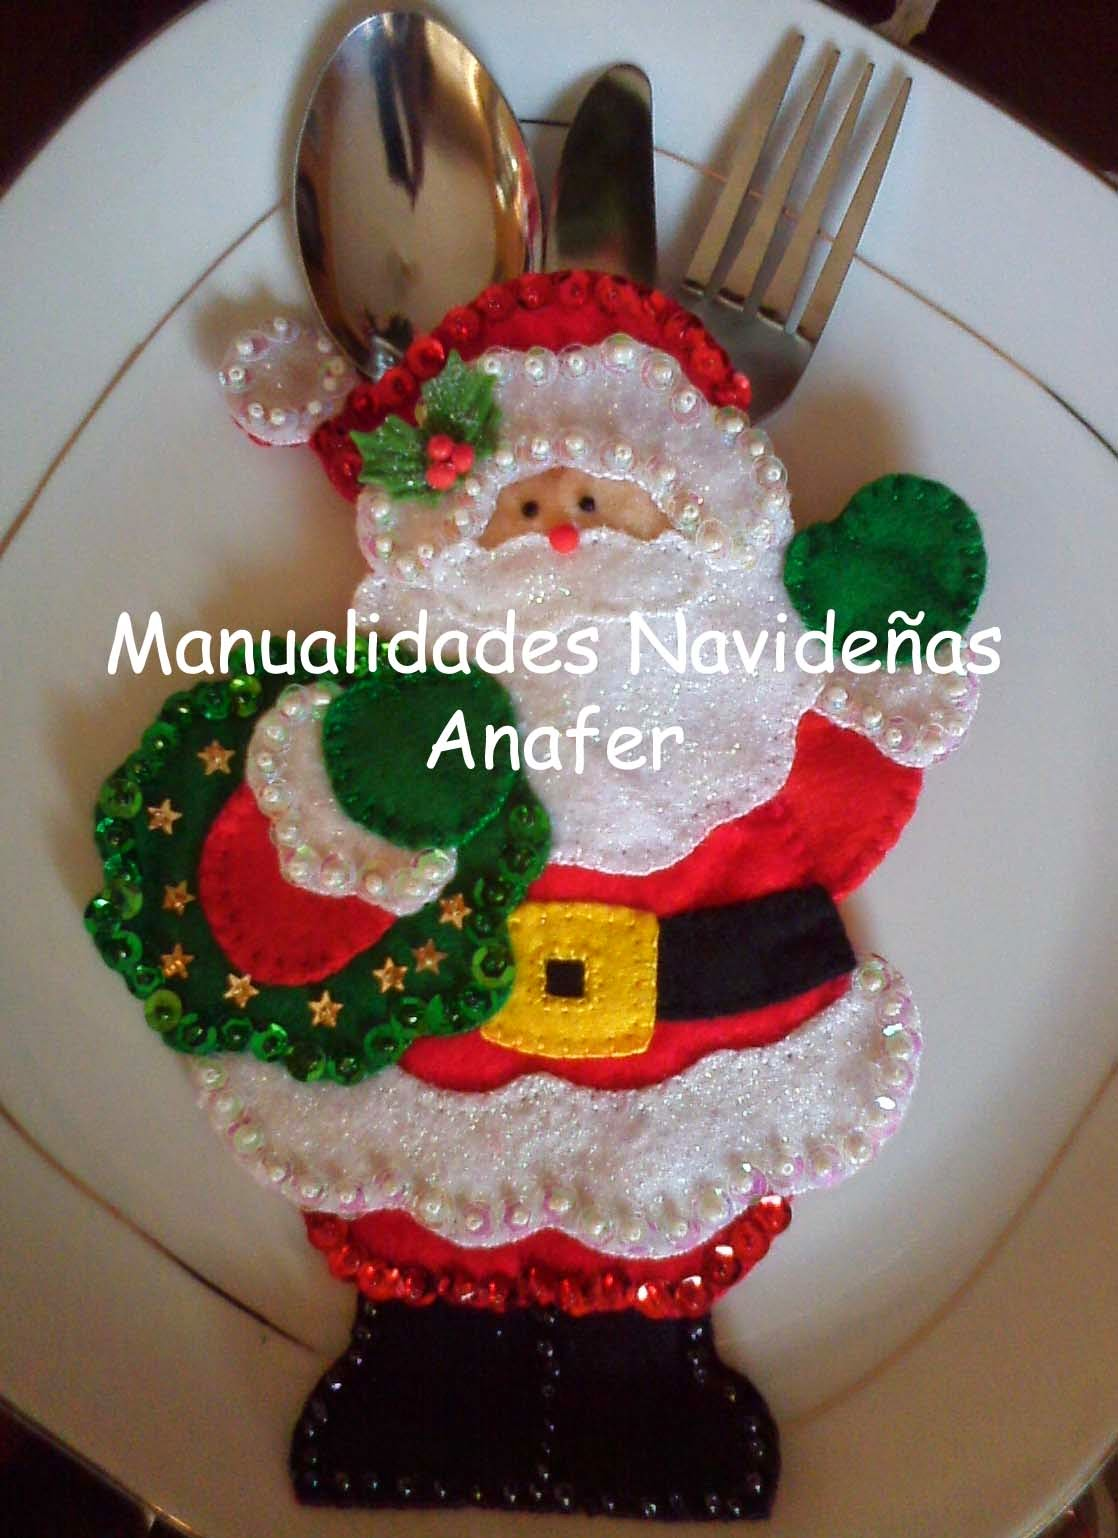 Manualidades navide as anafer portacubiertos navide os - Adornos para fotos gratis ...